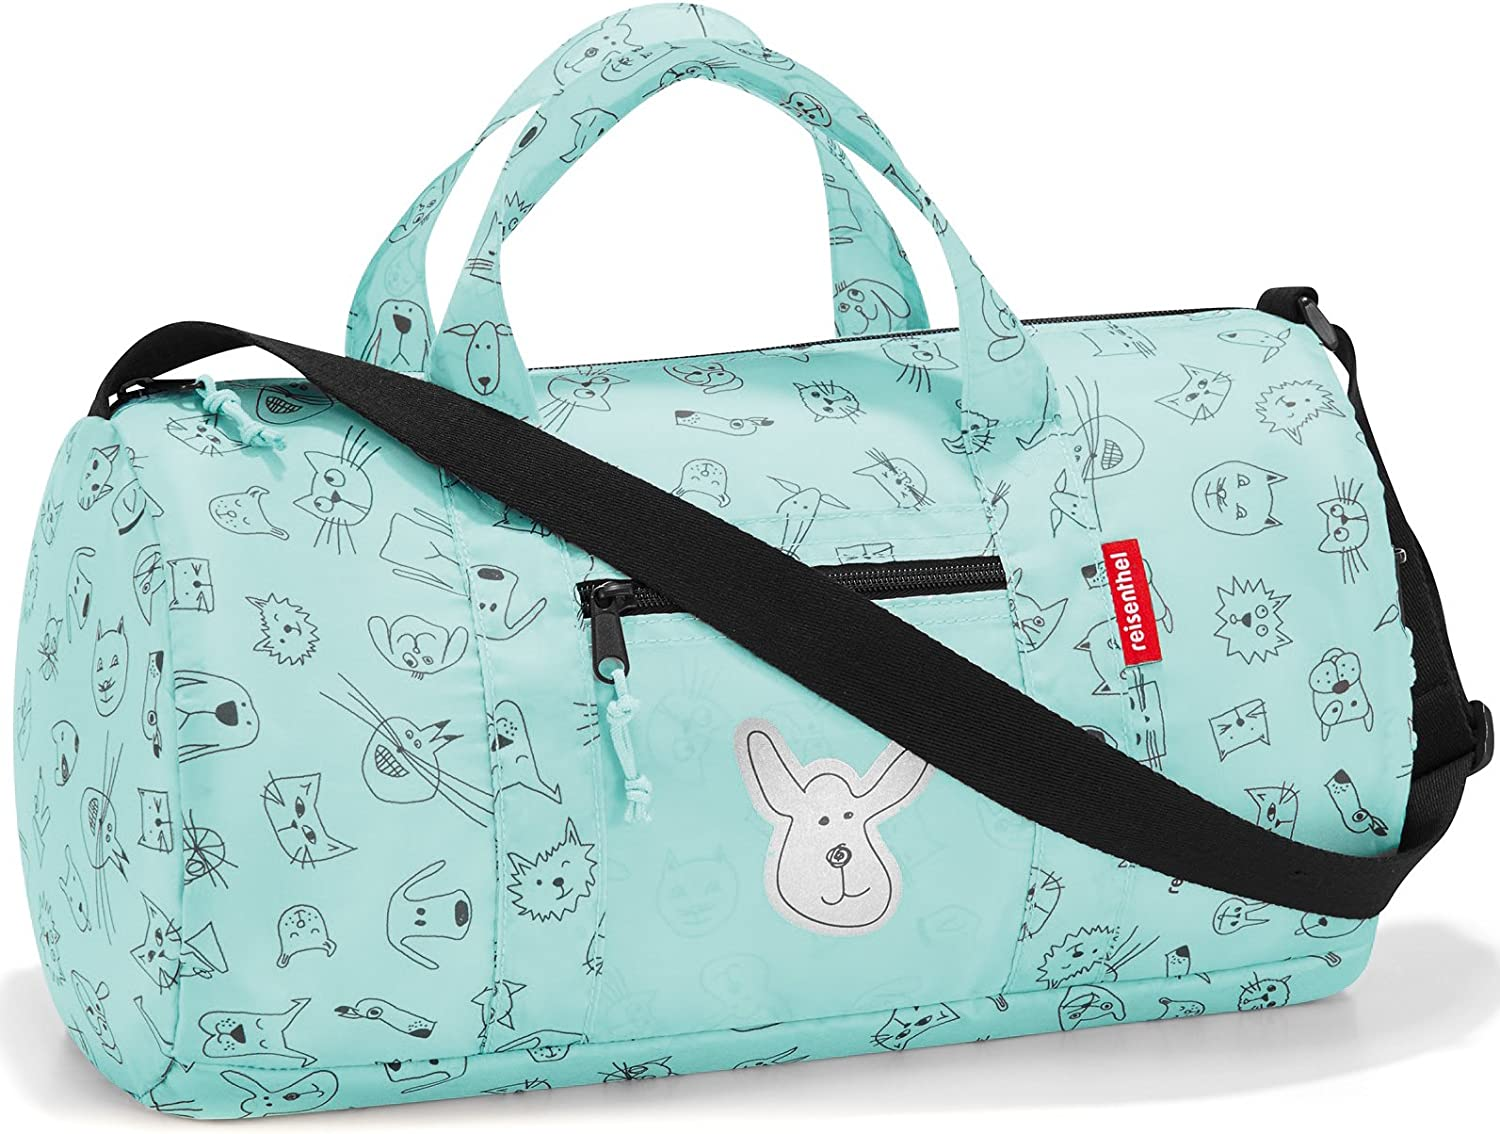 Cats and Dogs Rose Reisenthel Sac de Sport Grand Format Rouge - IH4062